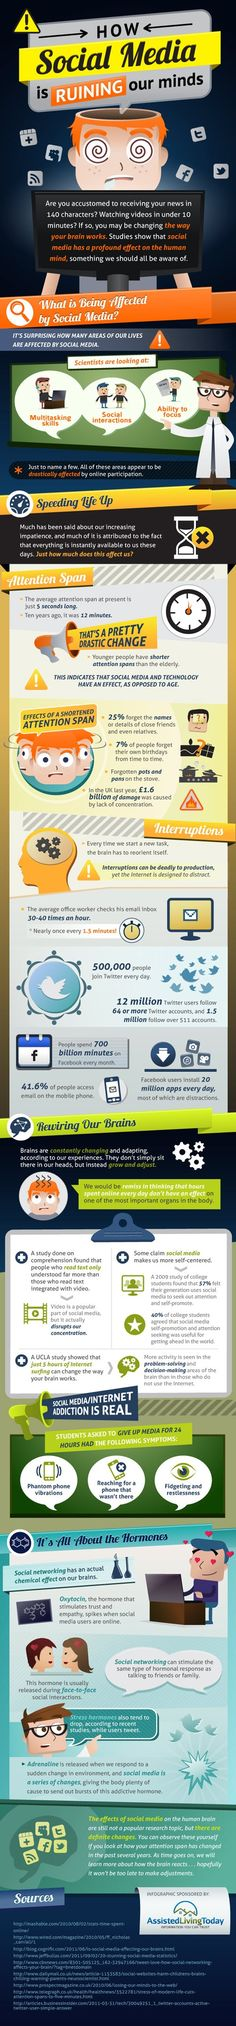 Well-illustrated infographic on the effect social media is having on our minds. #infographic